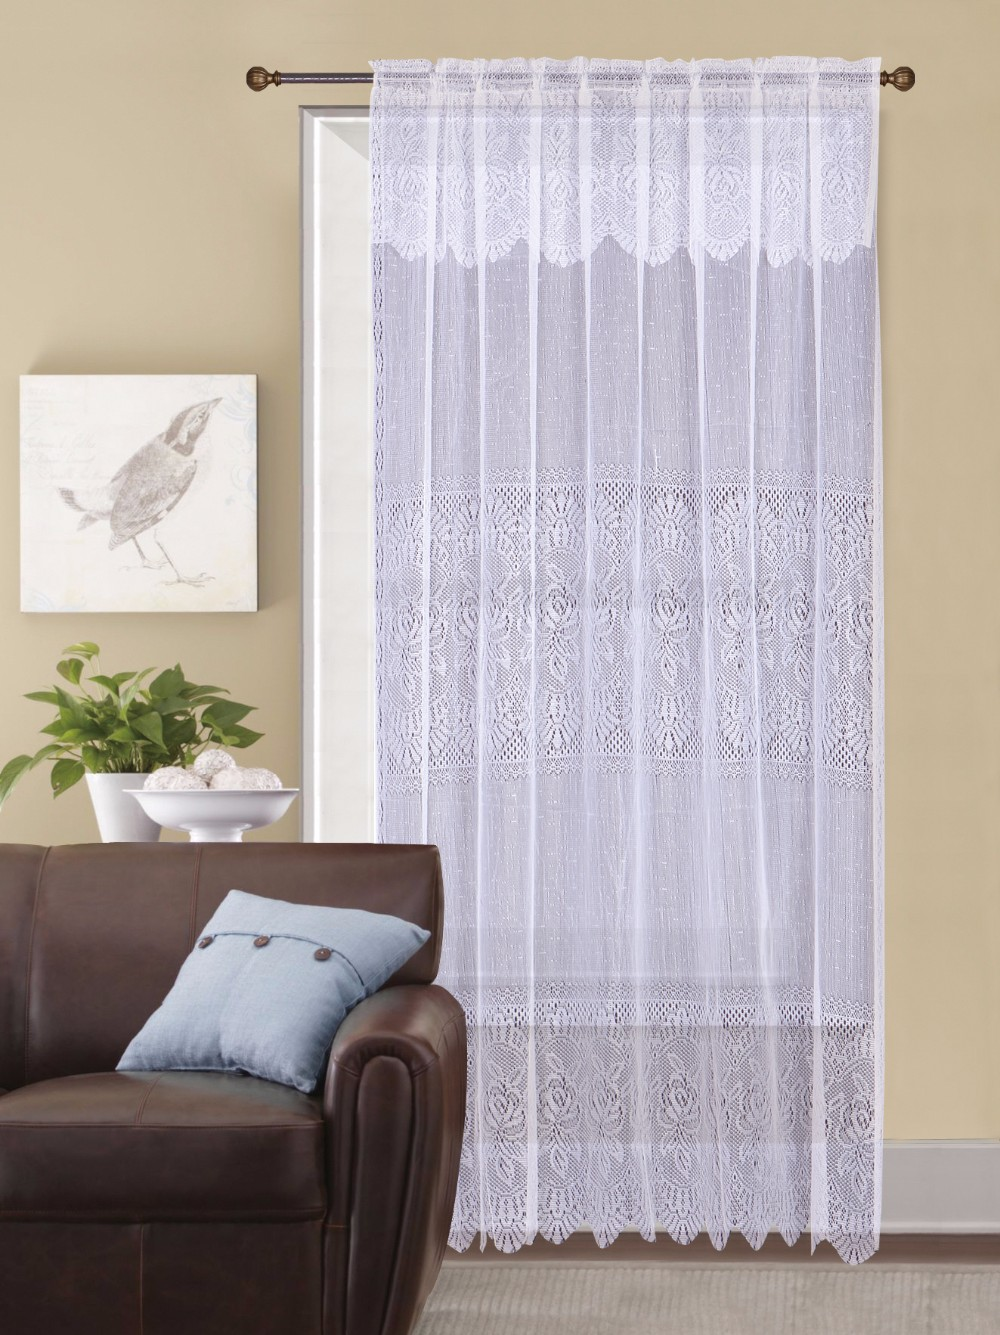 1PC 100% Polyester Flower Voile Beautiful Macrame Embroidery Curtain